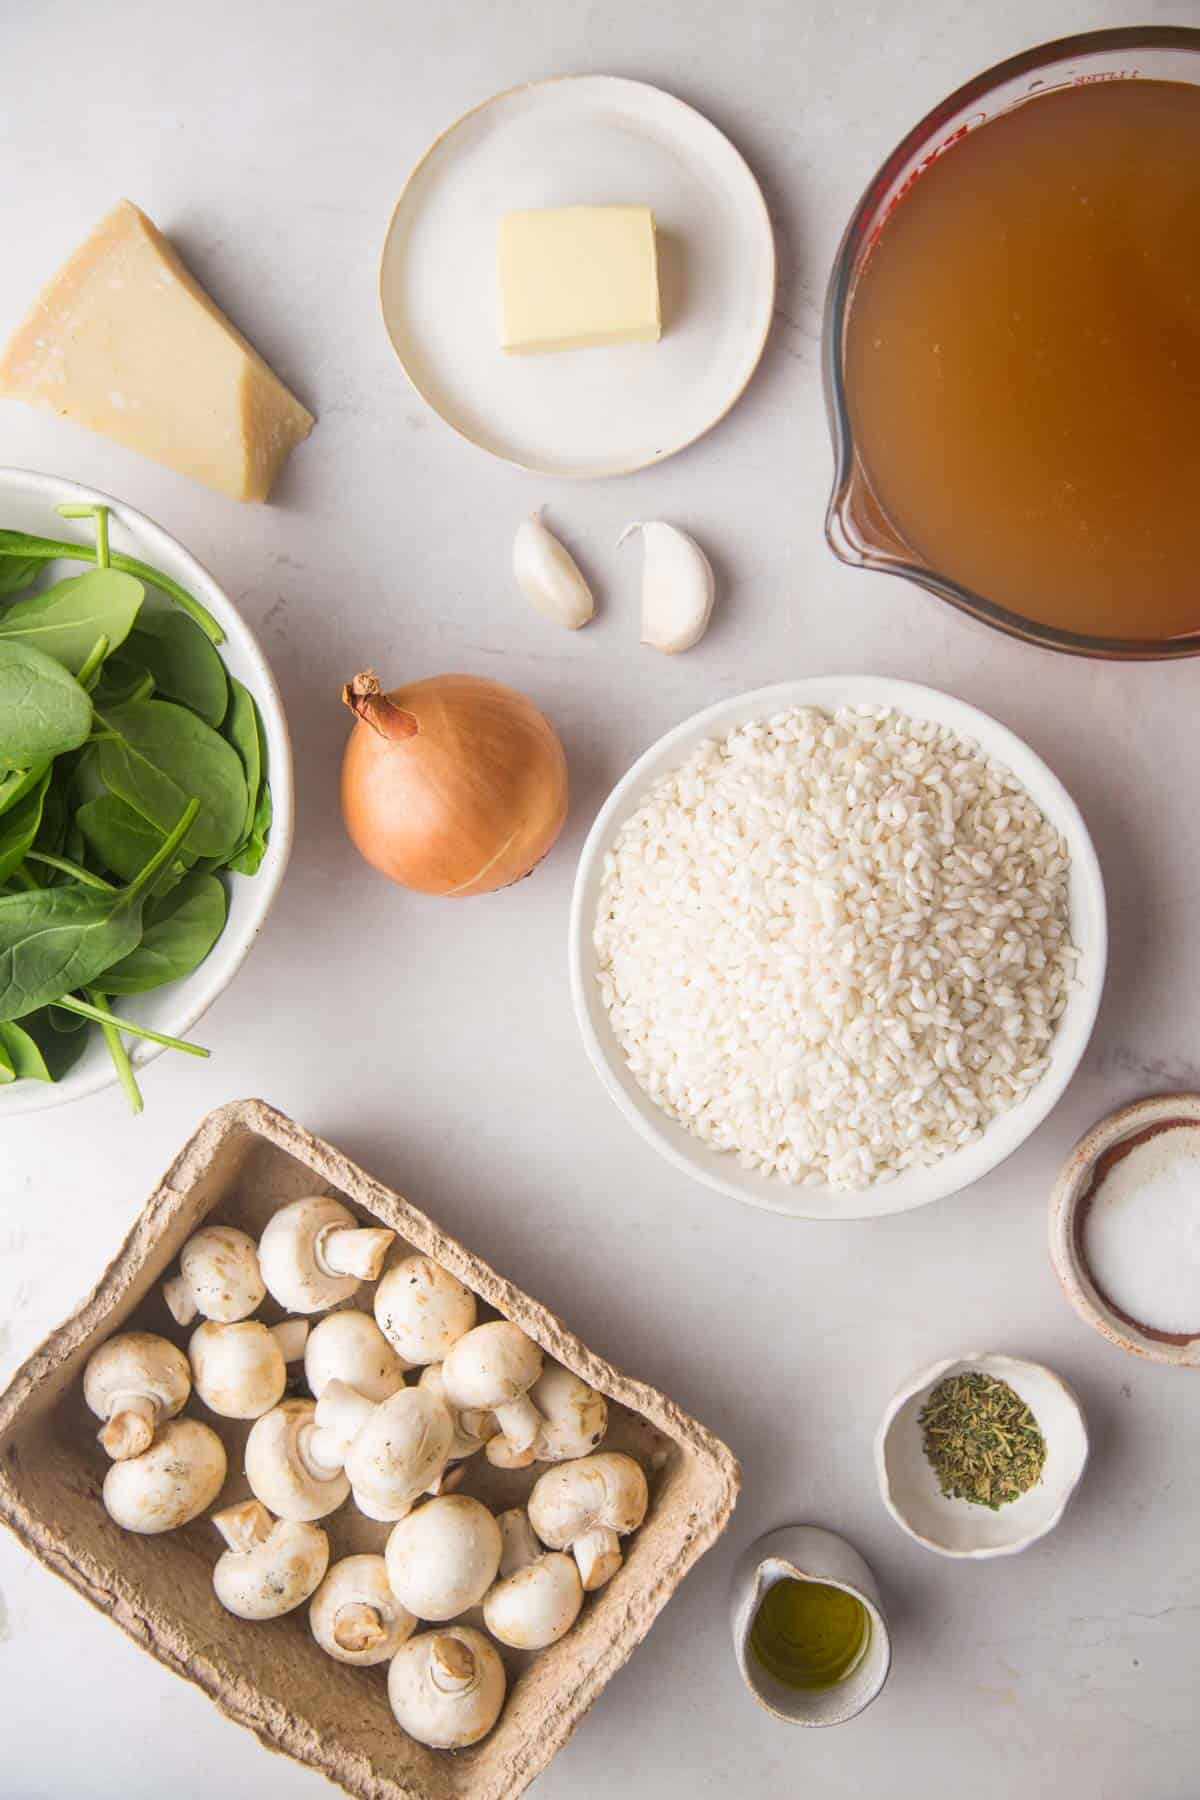 Instant Pot Mushroom Risotto ingredients